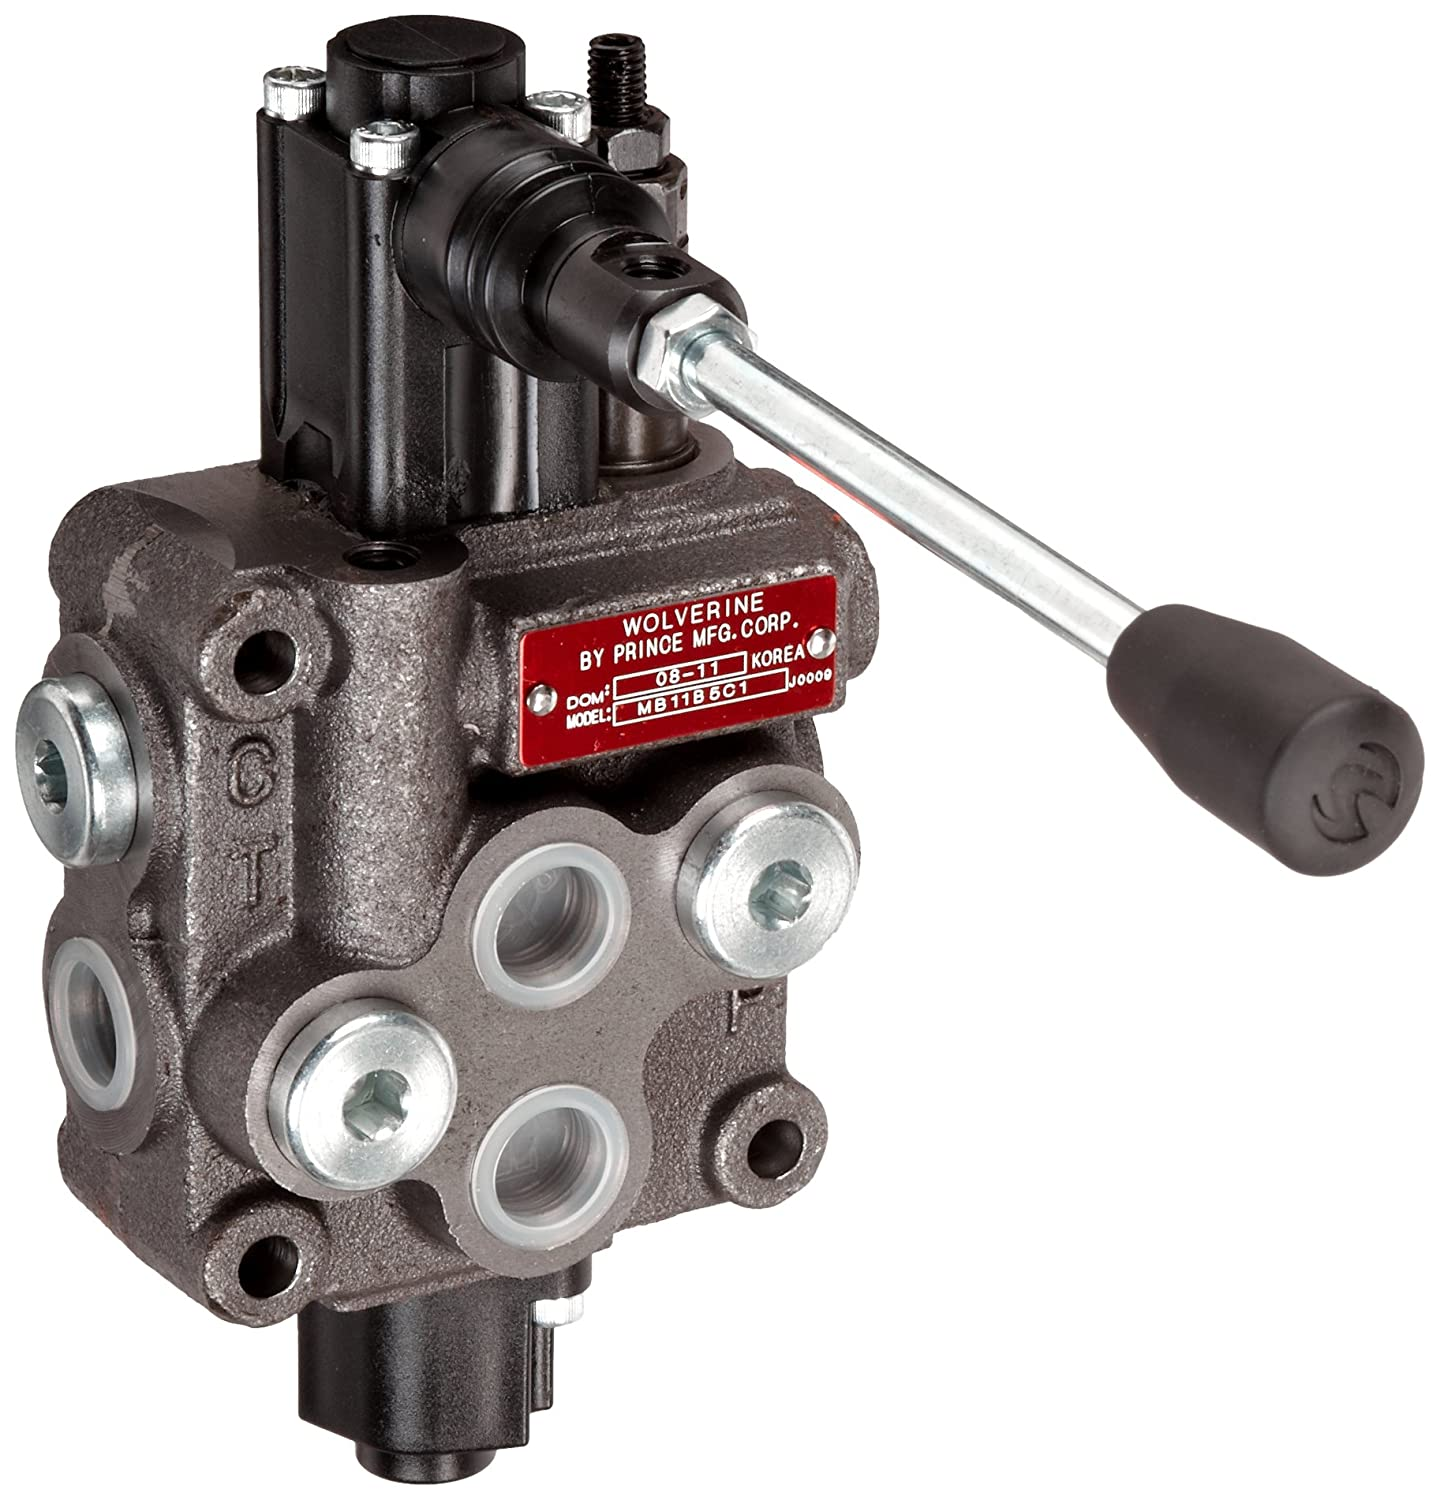 Prince MB11B5C1 Directional Control Valve, Monoblock, Cast Iron, 1 Spool, 4 Ways, 3 Positions, Single Acting Cylinder Spool, Spring Center, Straight Handle, 3500 psi, 8 gpm, In/Out: #8 SAE, Work #8 SAE Prince Manufacturing